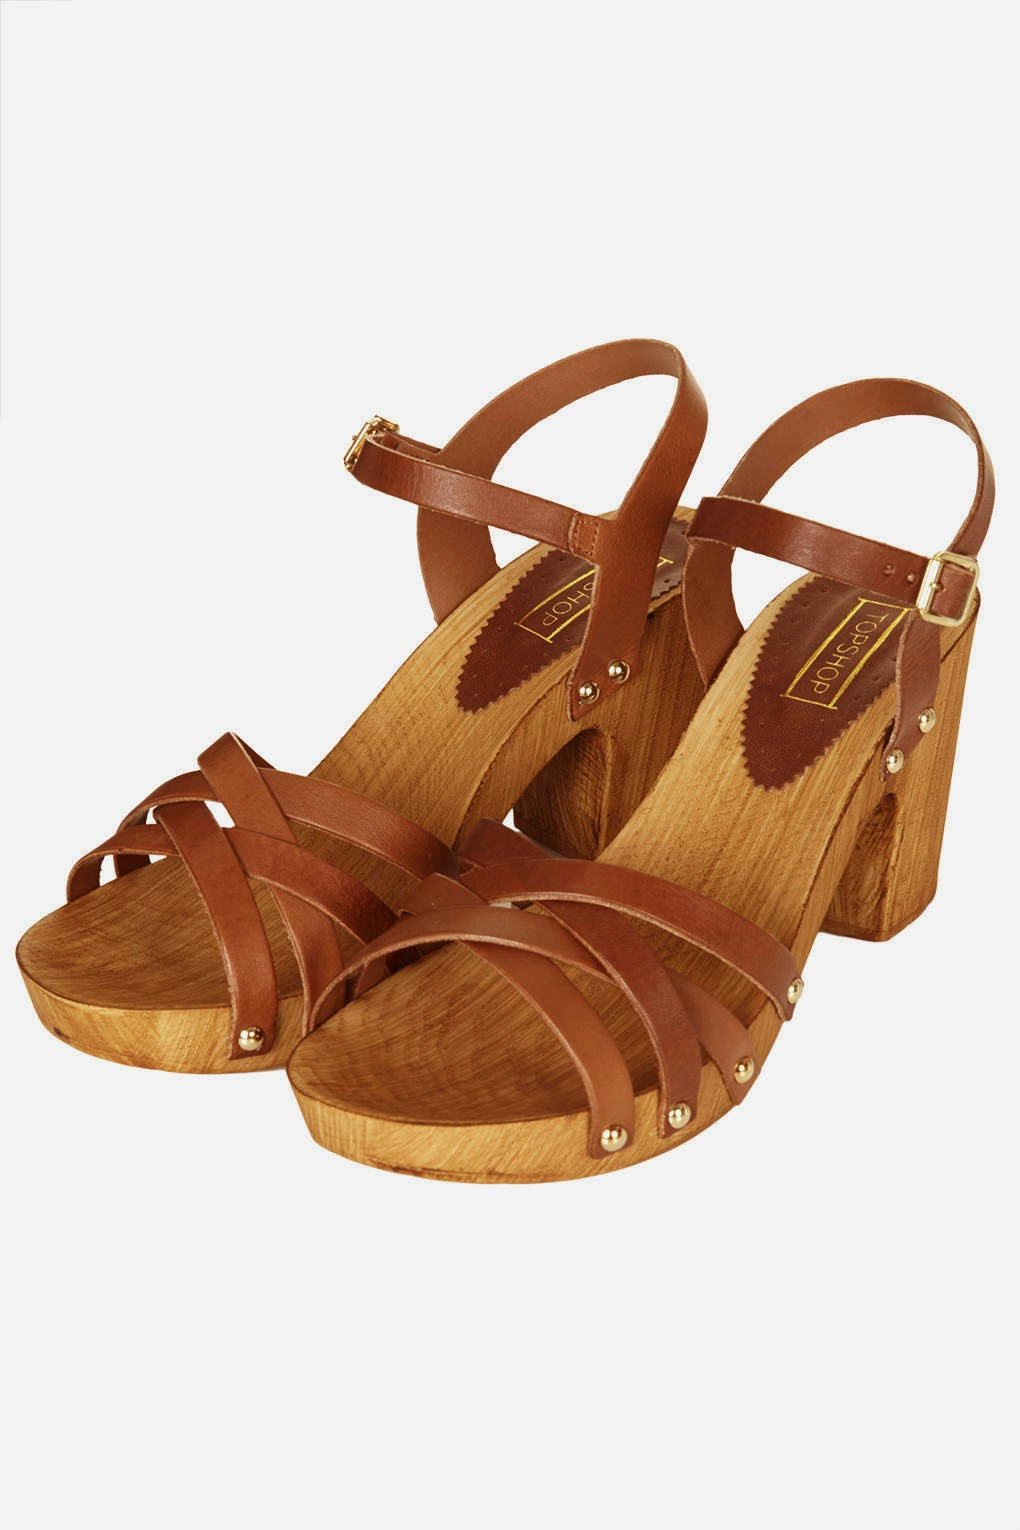 tan leather wooden sandals